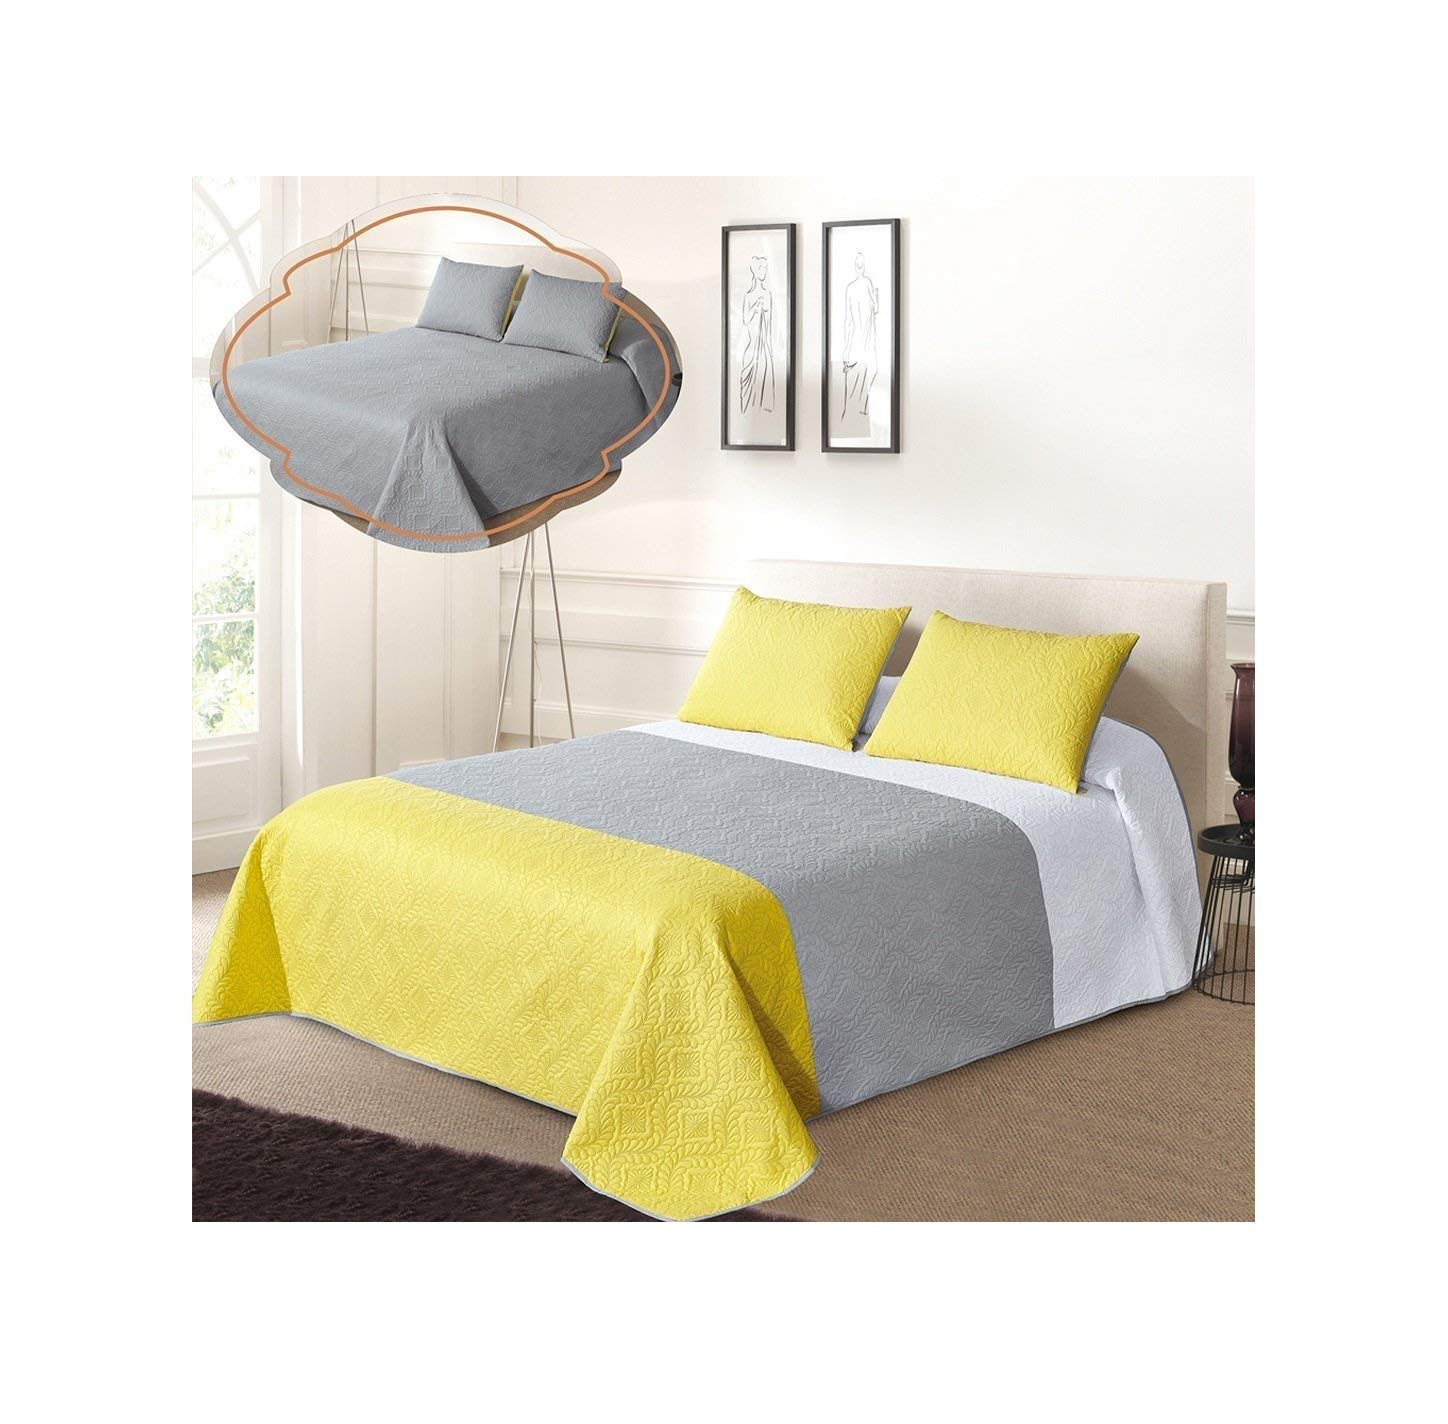 All American Collection New 3pc Solid Three Color Combination Reversible Bedspread Set (TWIN/ TWIN XL, White/Grey/Yellow